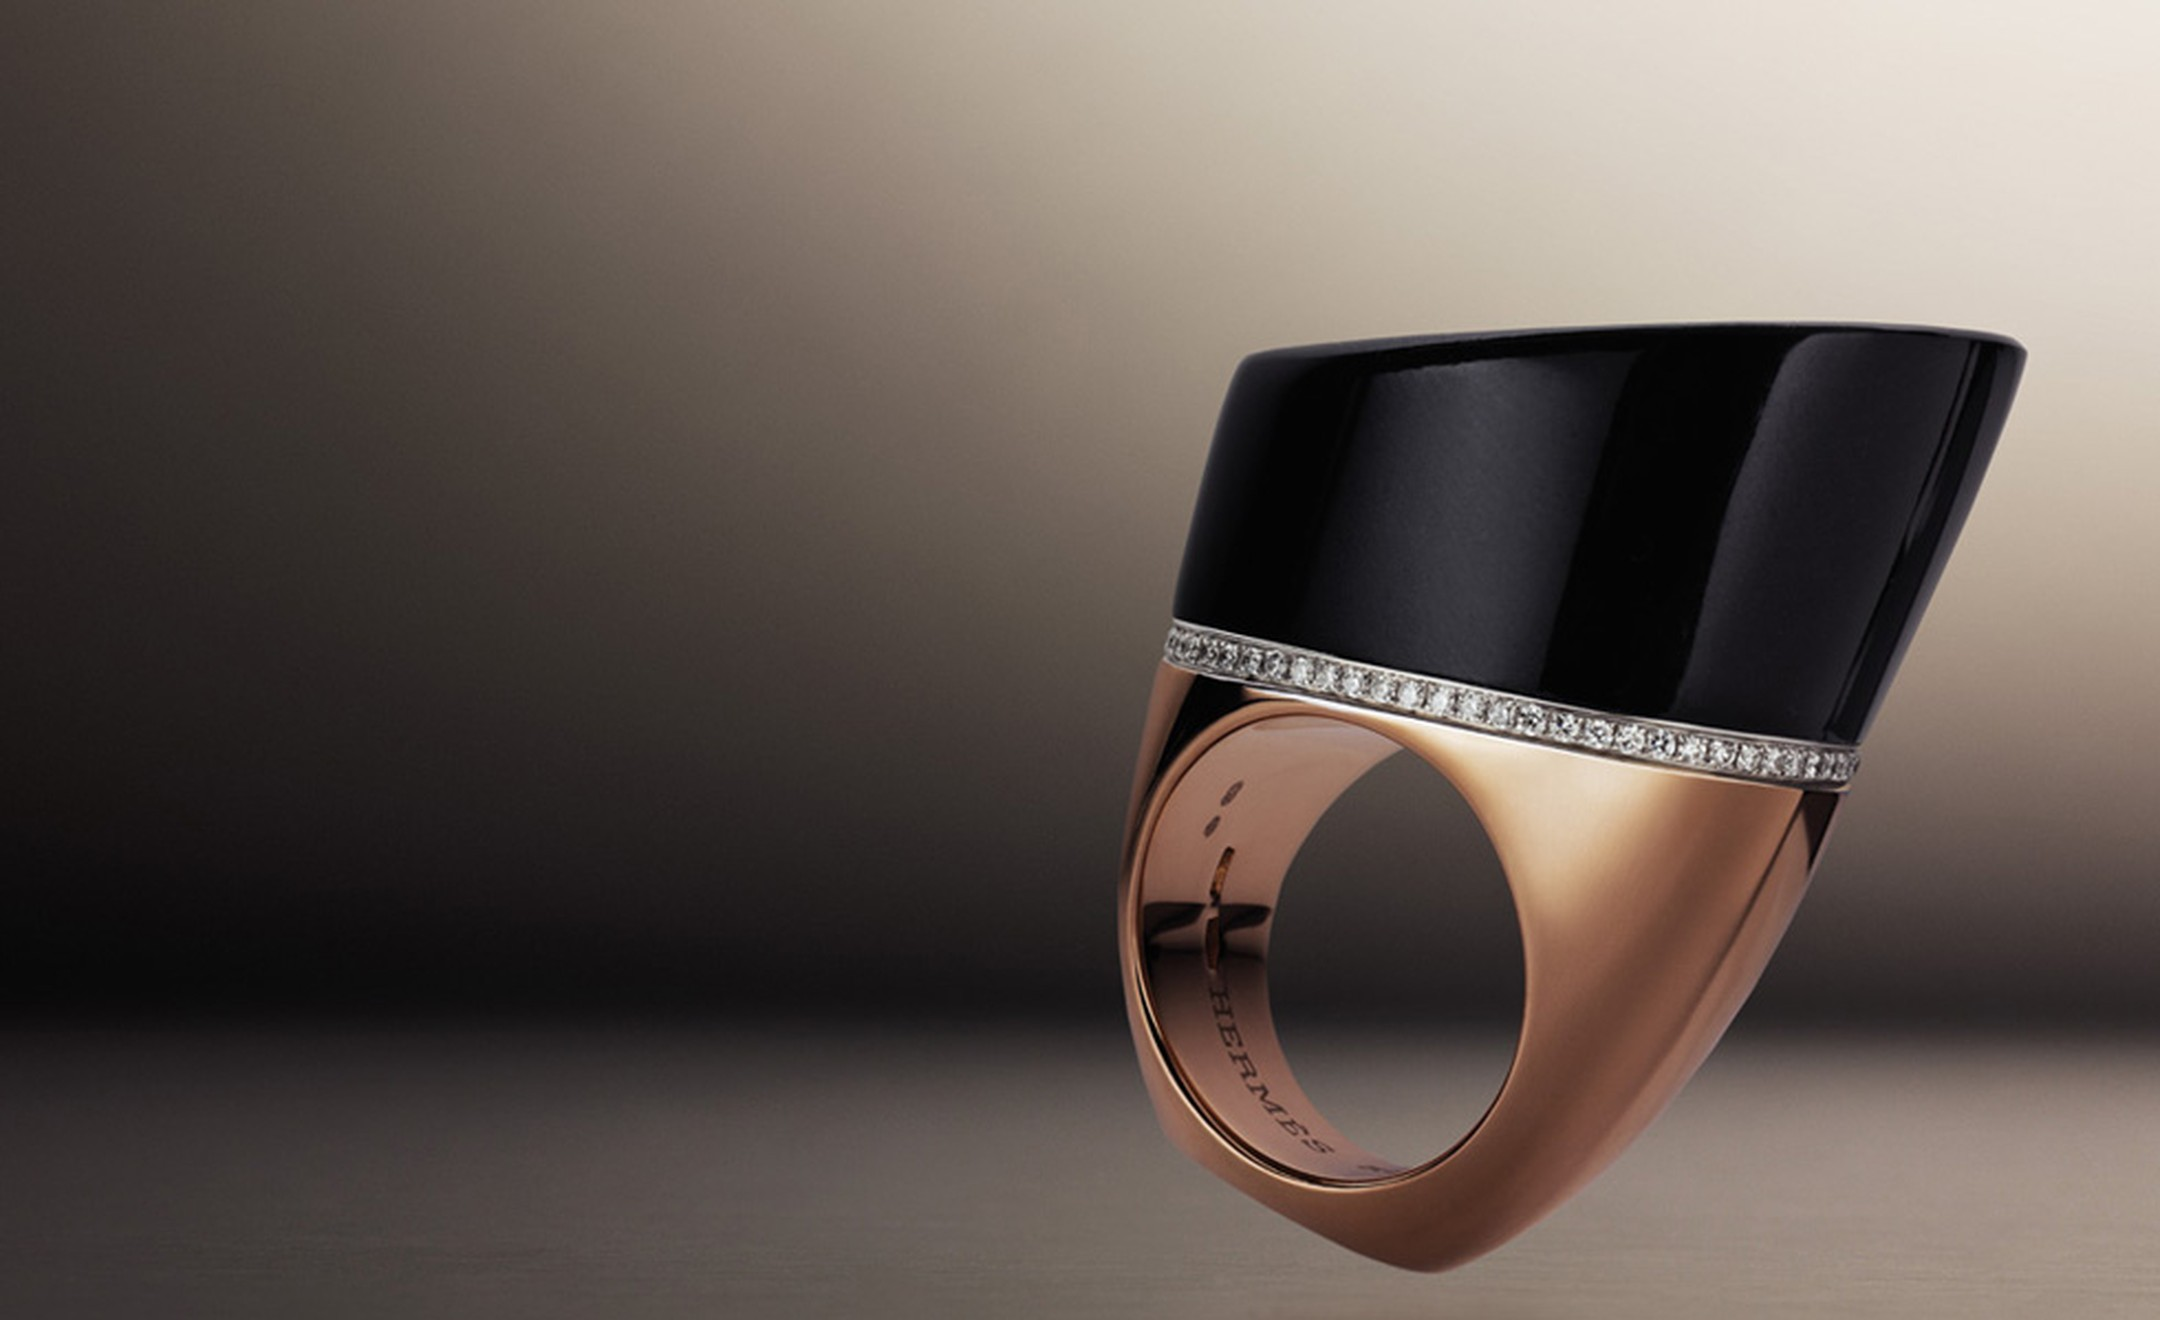 Hermès Centaure ring in rose gold with black jade and diamonds.The rings all have flat bottoms so that it can be displayed like a sculpture.